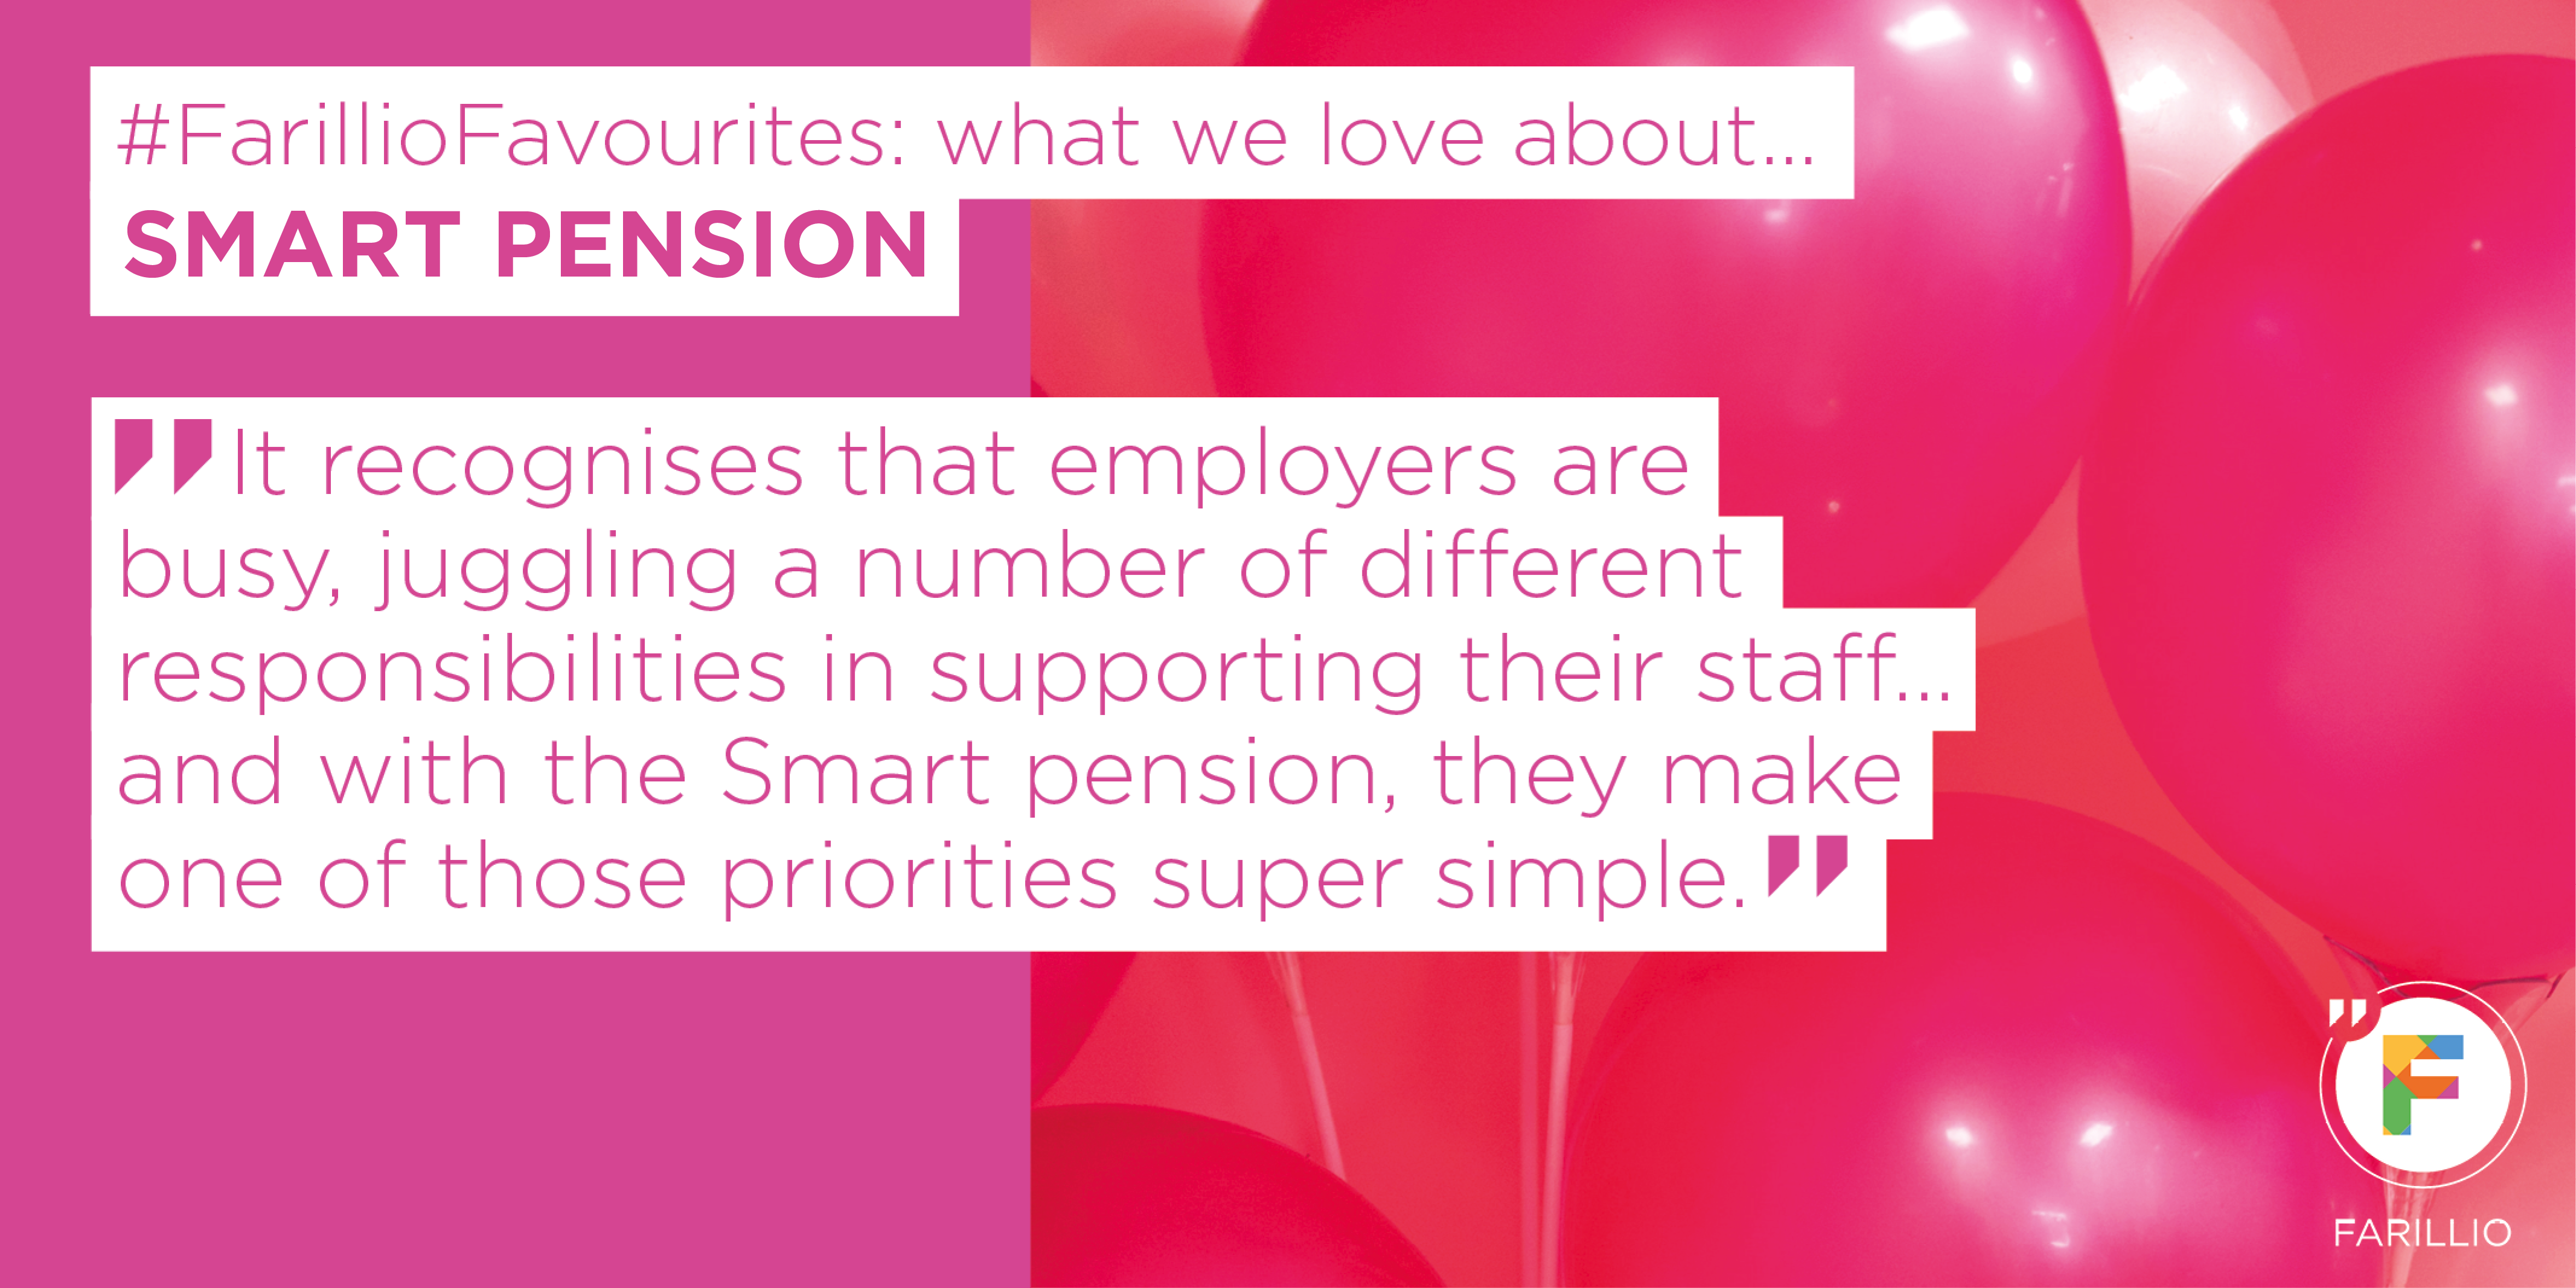 SMART-PENSION-1.png#asset:5286